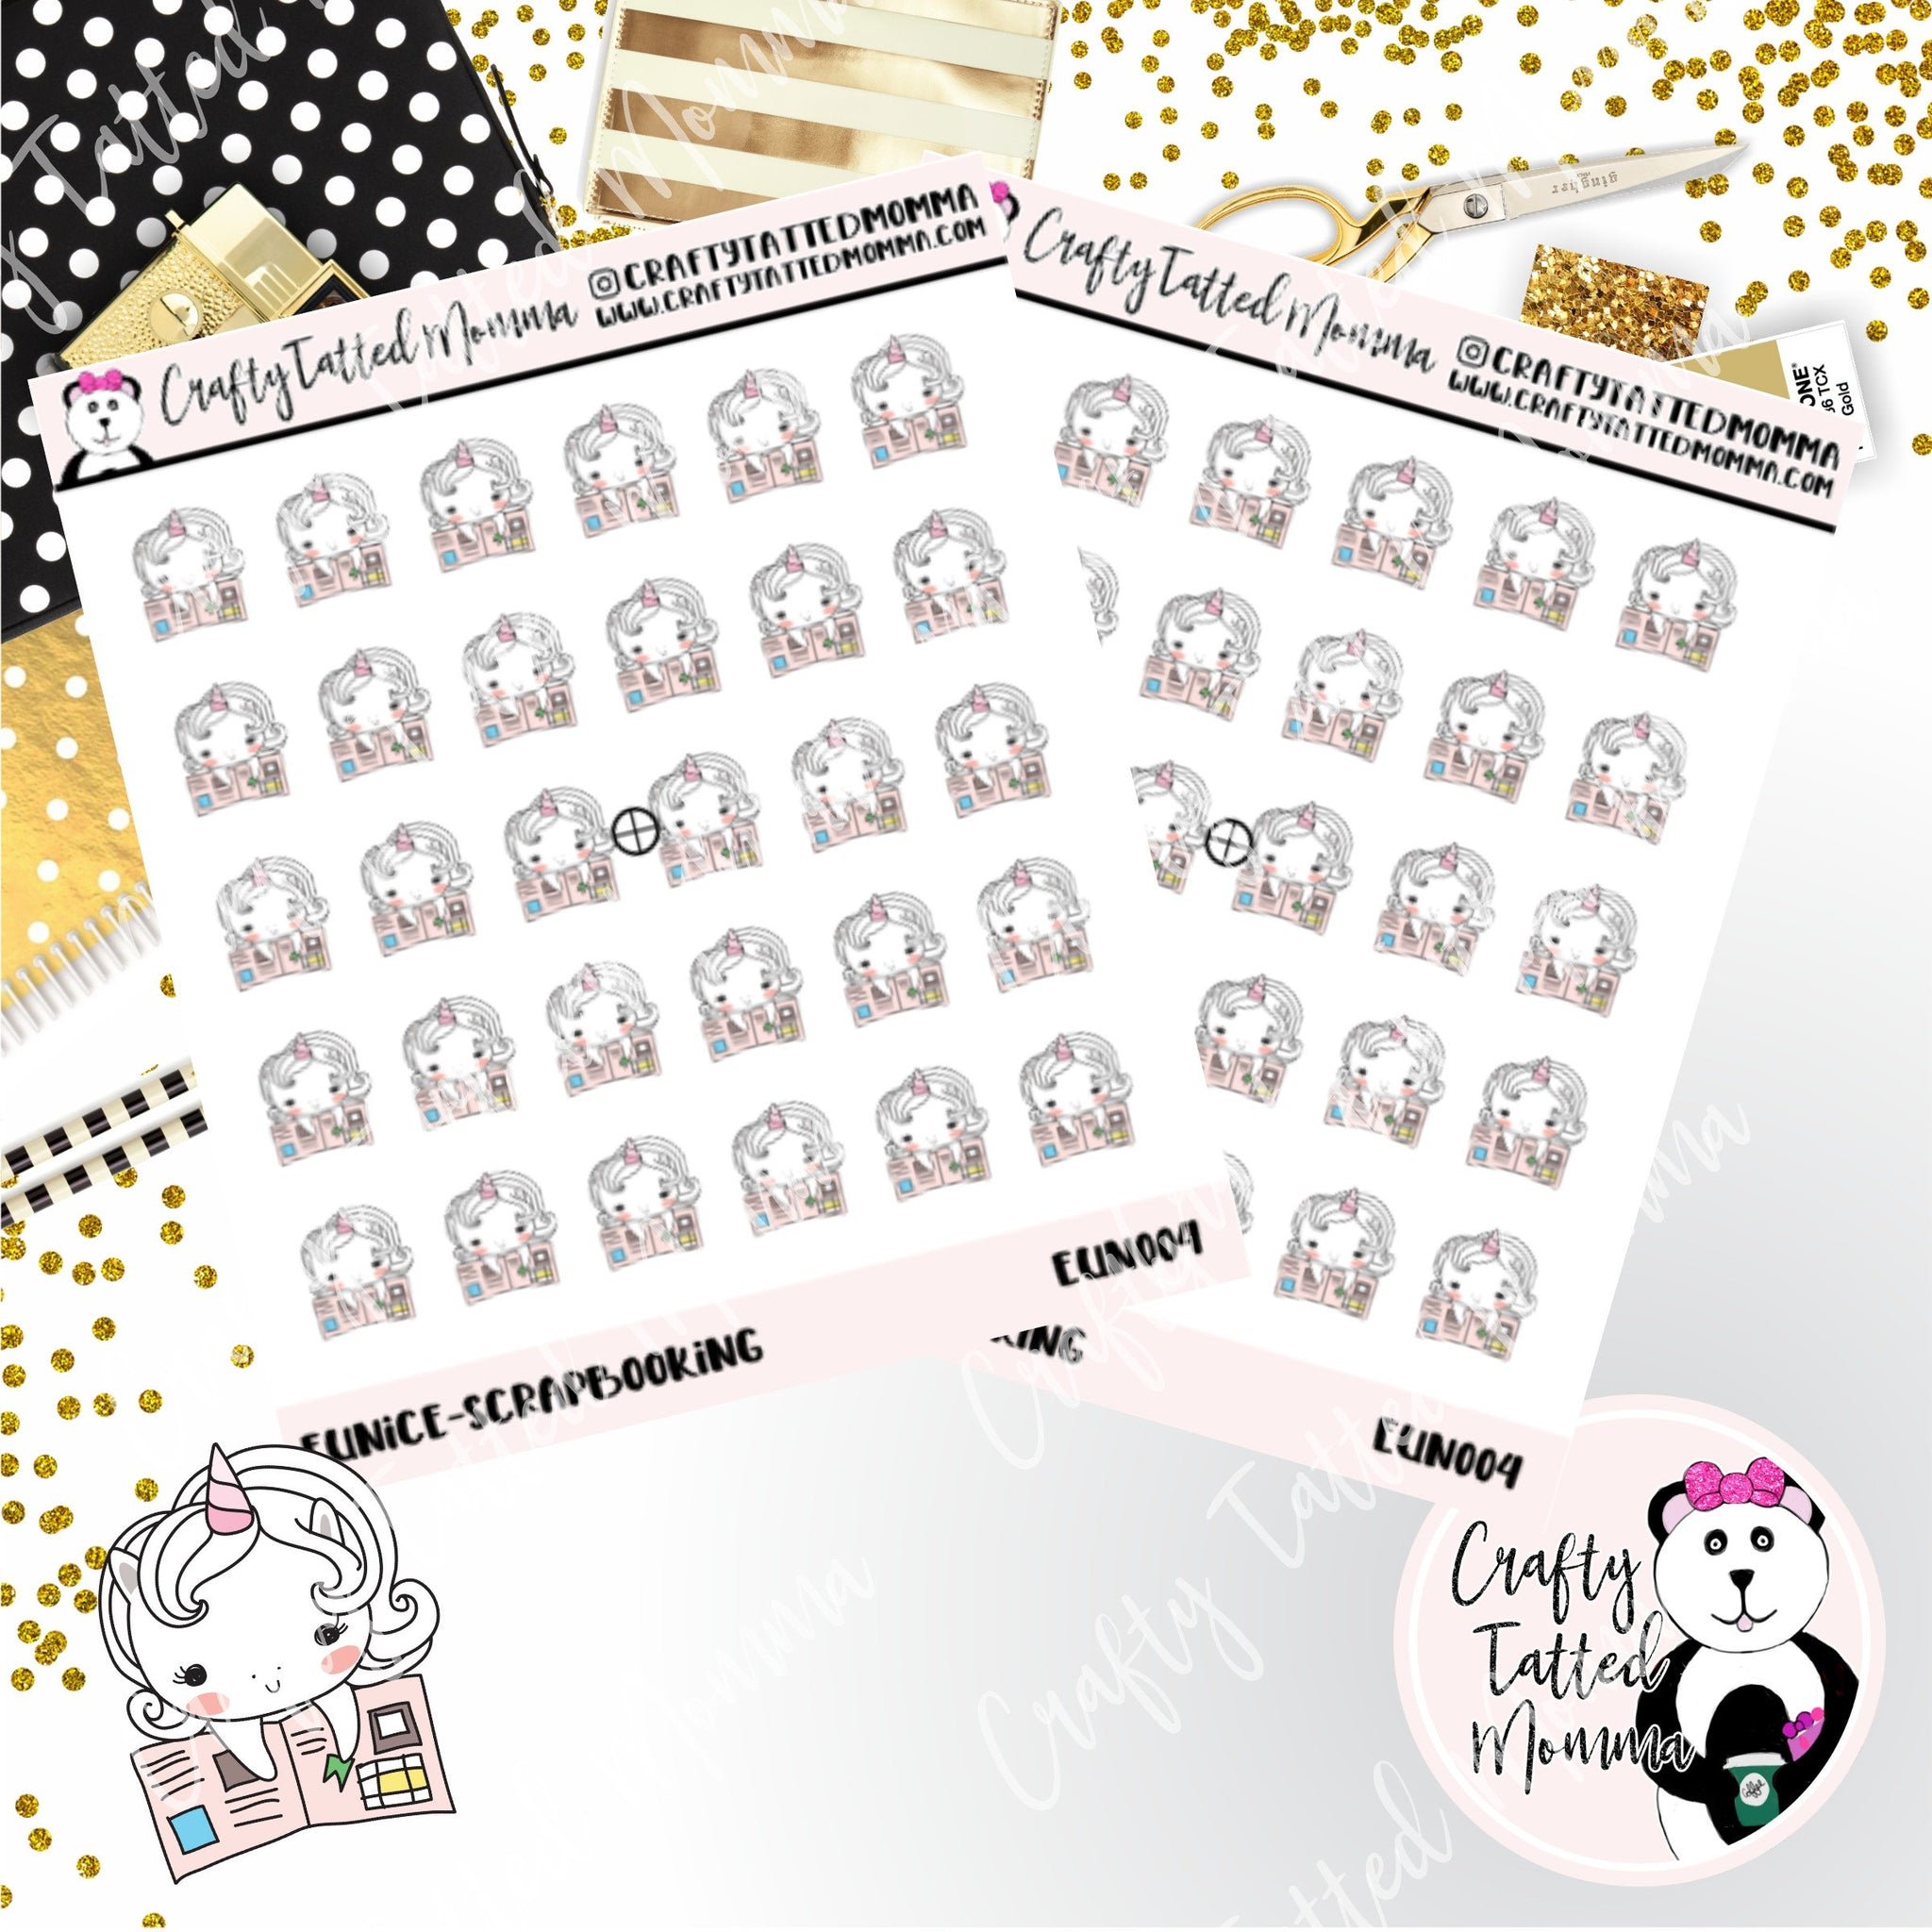 Eunice the Unicorn Scrapbooking / Character Stickers / Planner Stickers / Crafting Stickers / Craft Stickers / Unicorn Stickers